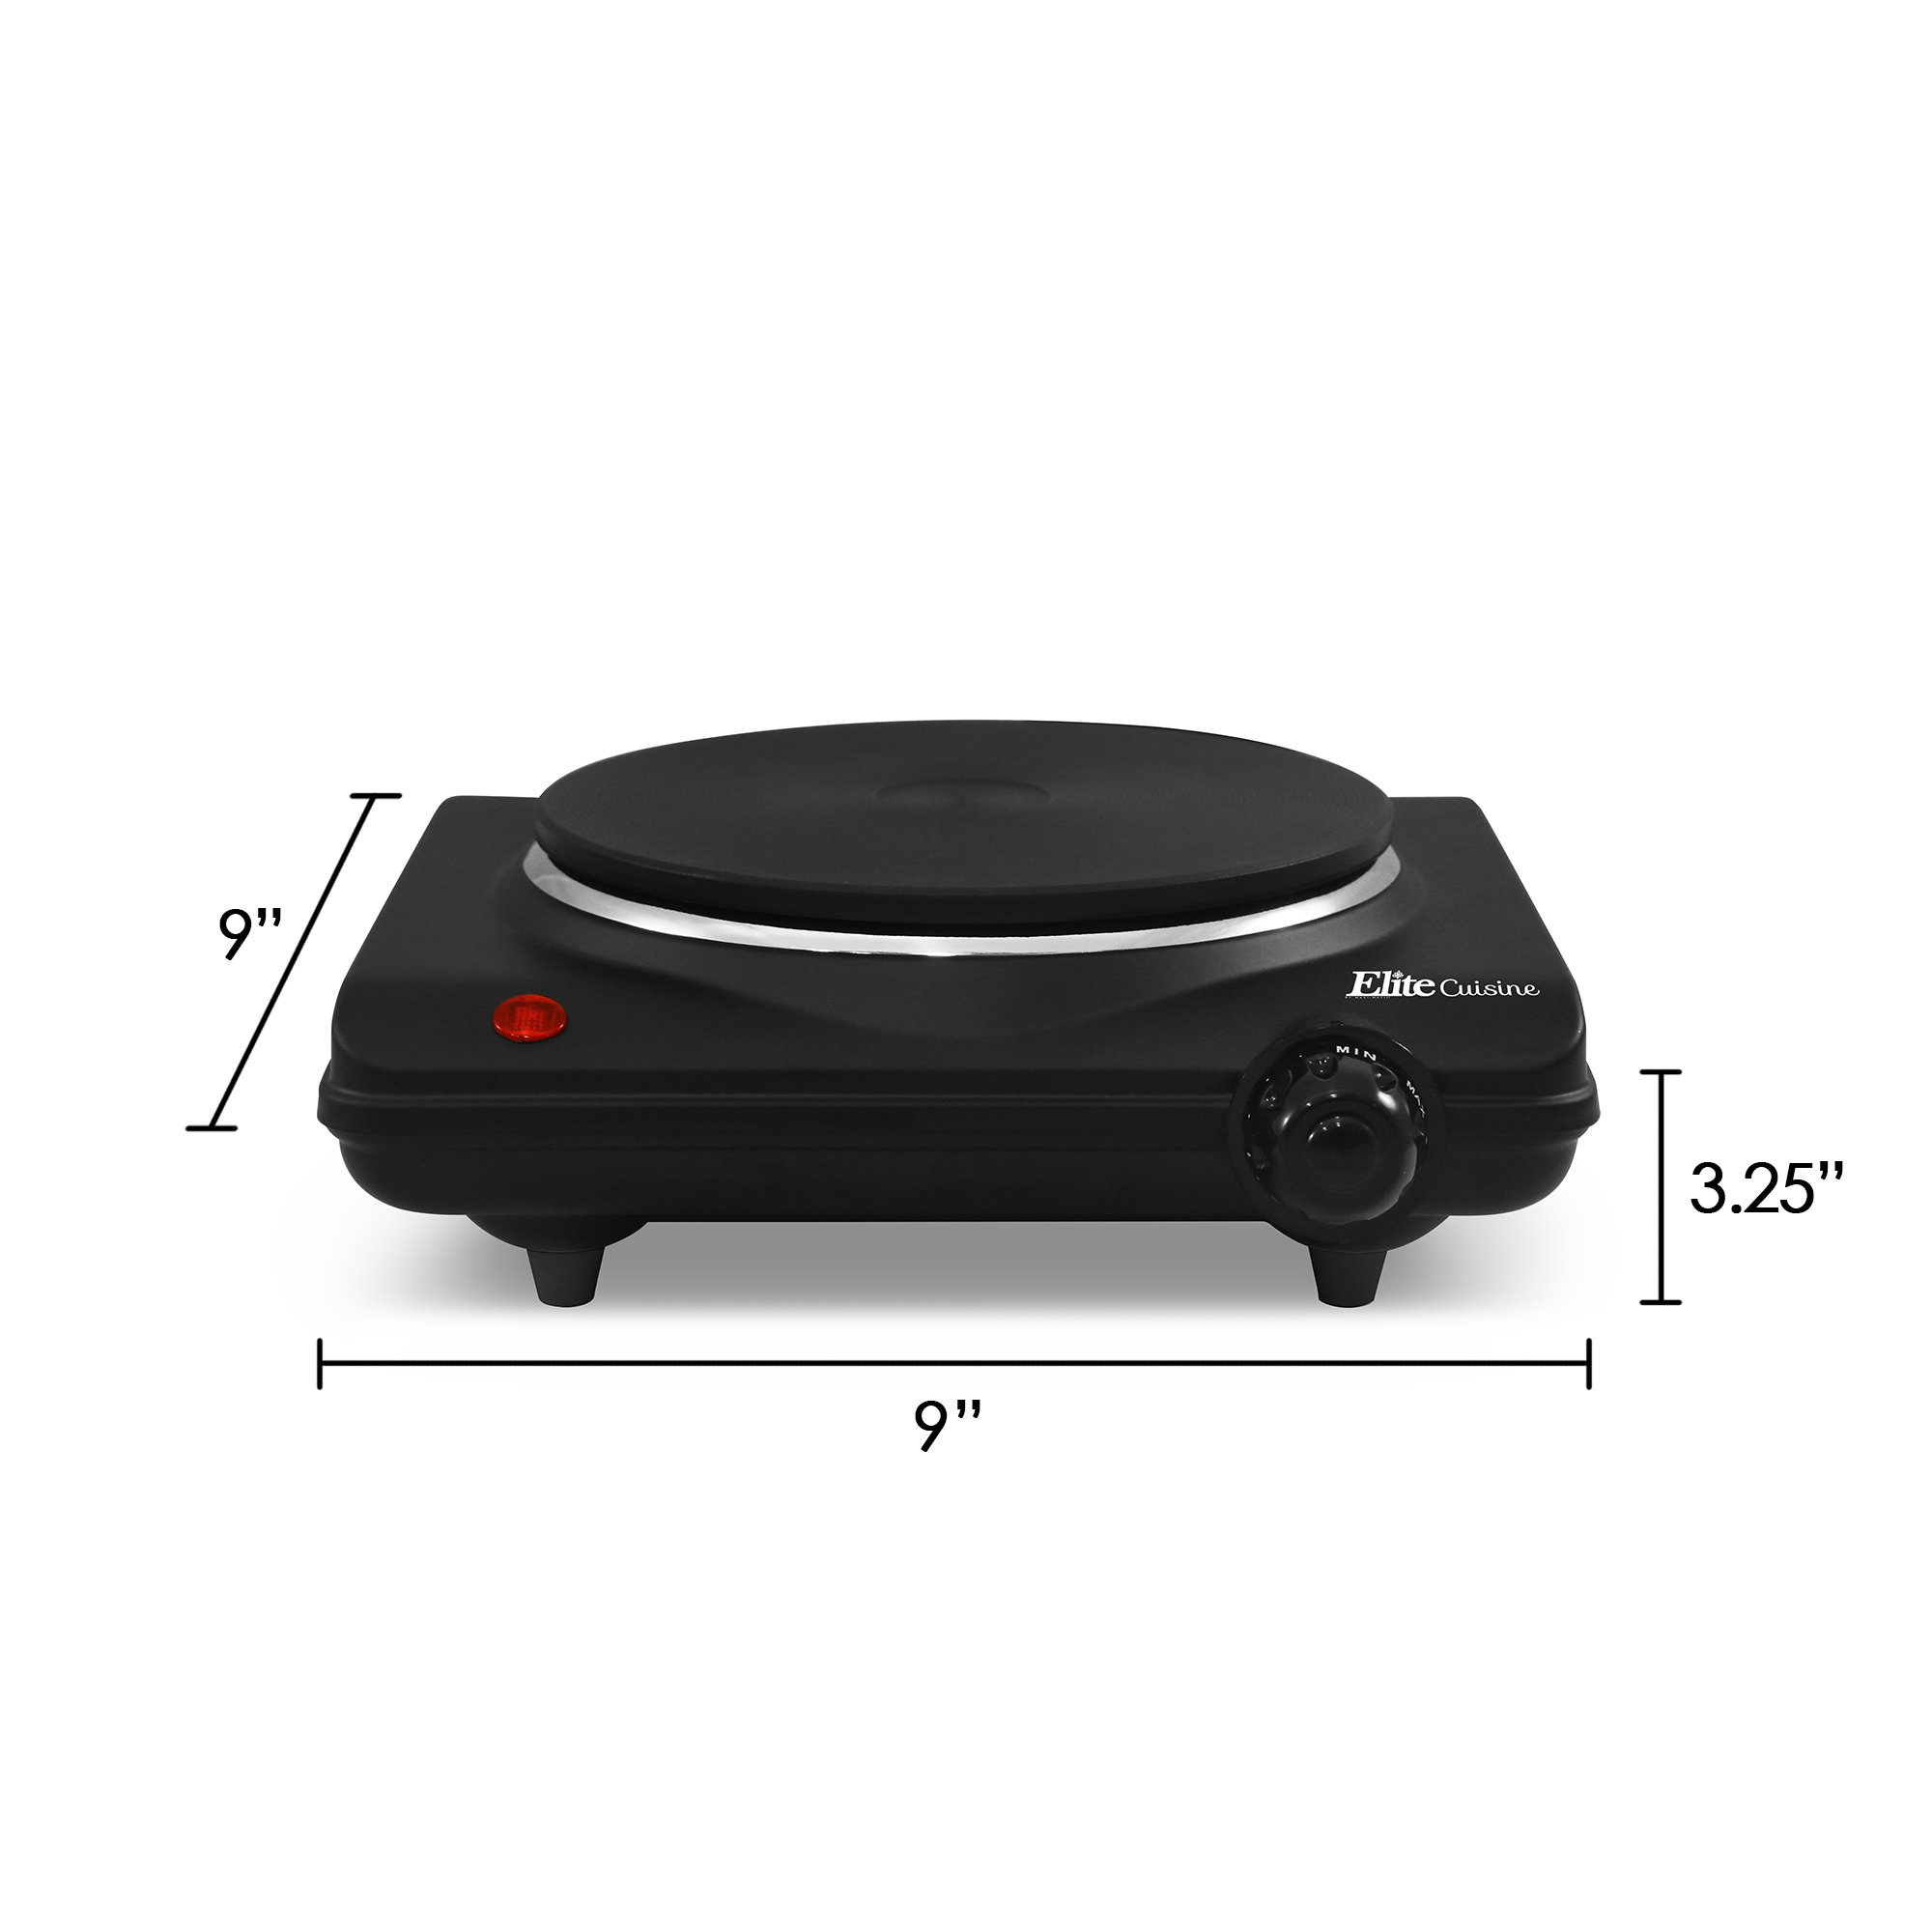 Elite Cuisine ESB-301BF Single Countertop Portable Buffet Burner Electric Hot Plate, Heavy duty flat cast iron heating plate, power indicator light, non-skid feet, easy to clean, 1000 Watts, Black by Maxi-Matic (Image #4)